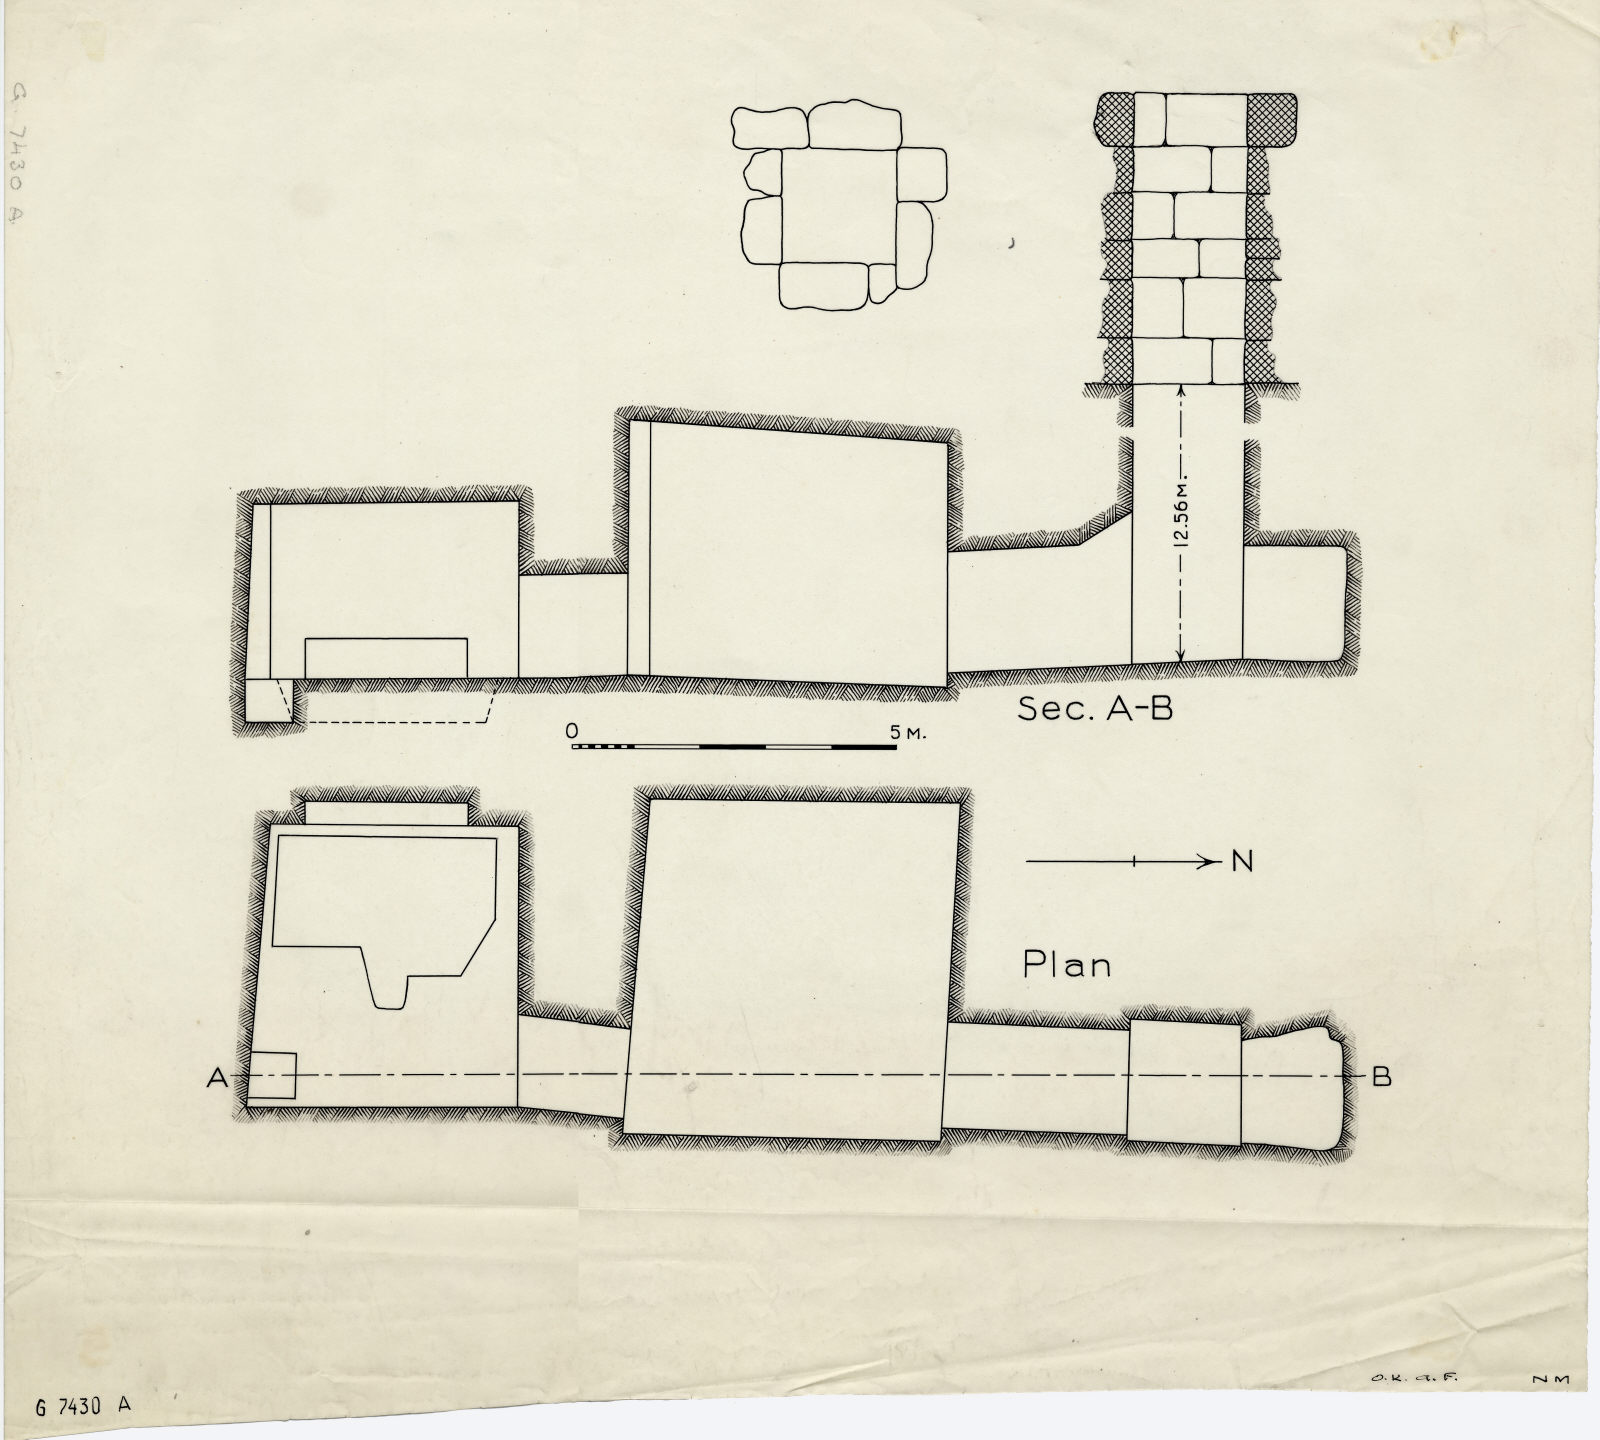 Maps and plans: G 7430, Shaft A